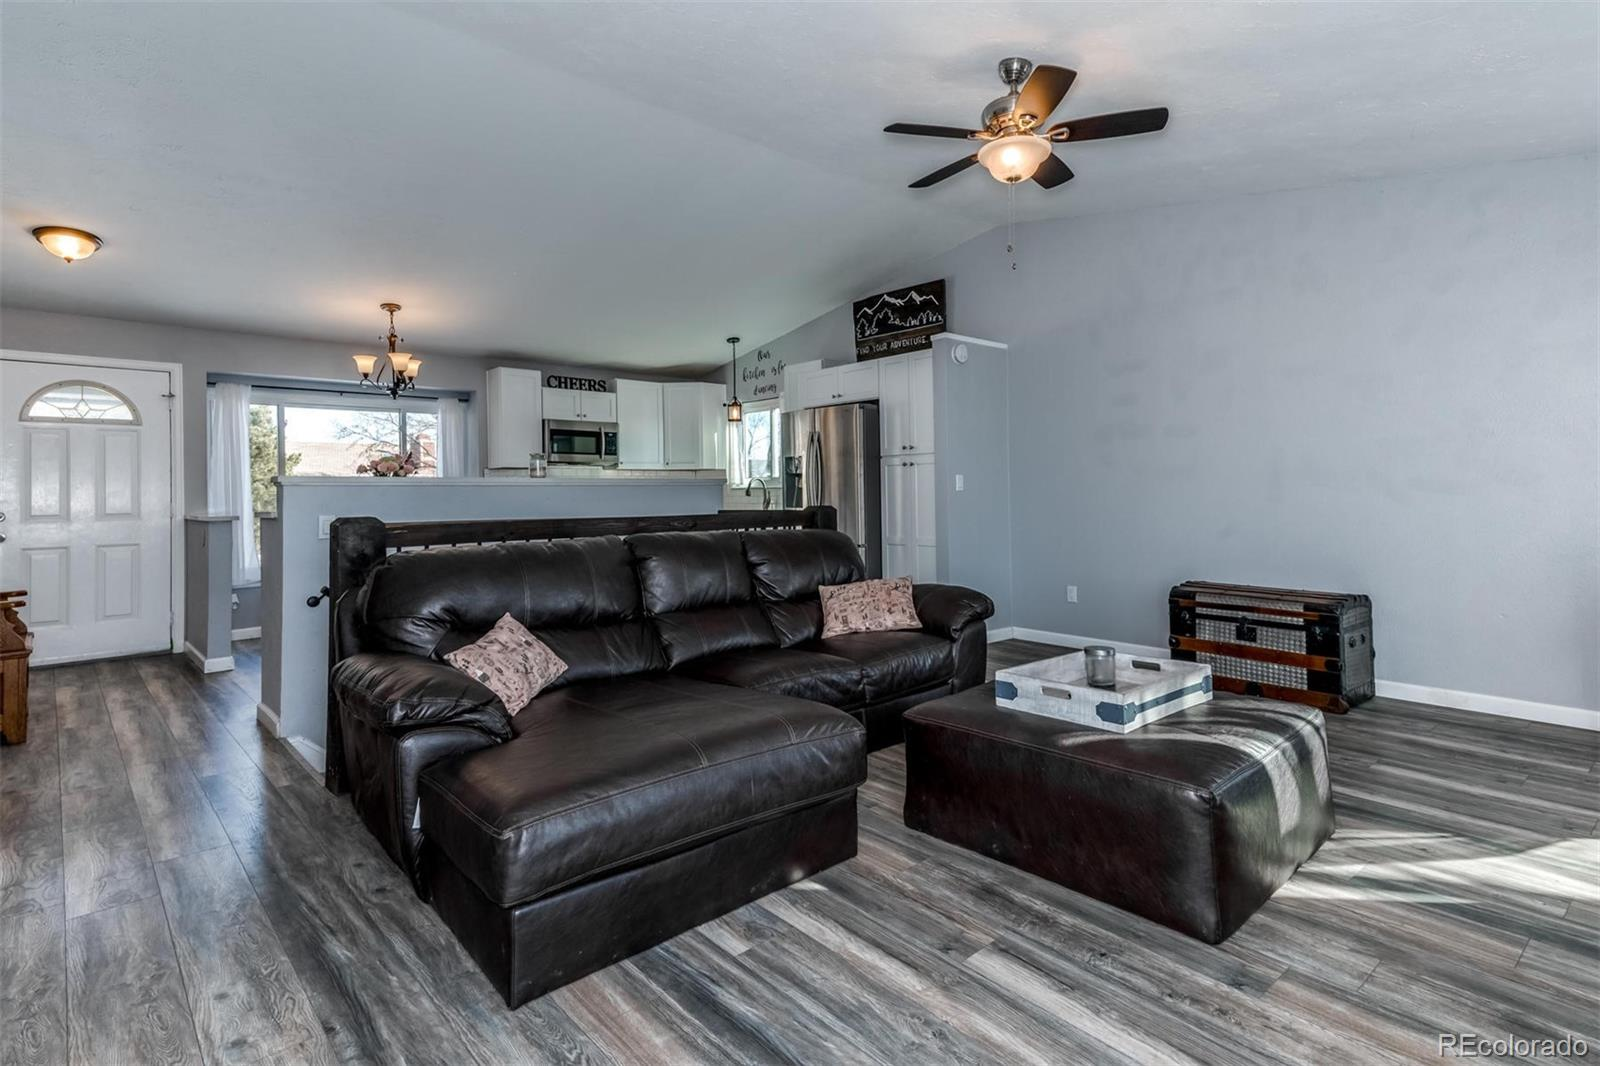 MLS# 5599126 - 10 - 5806 W 74th Place, Arvada, CO 80003